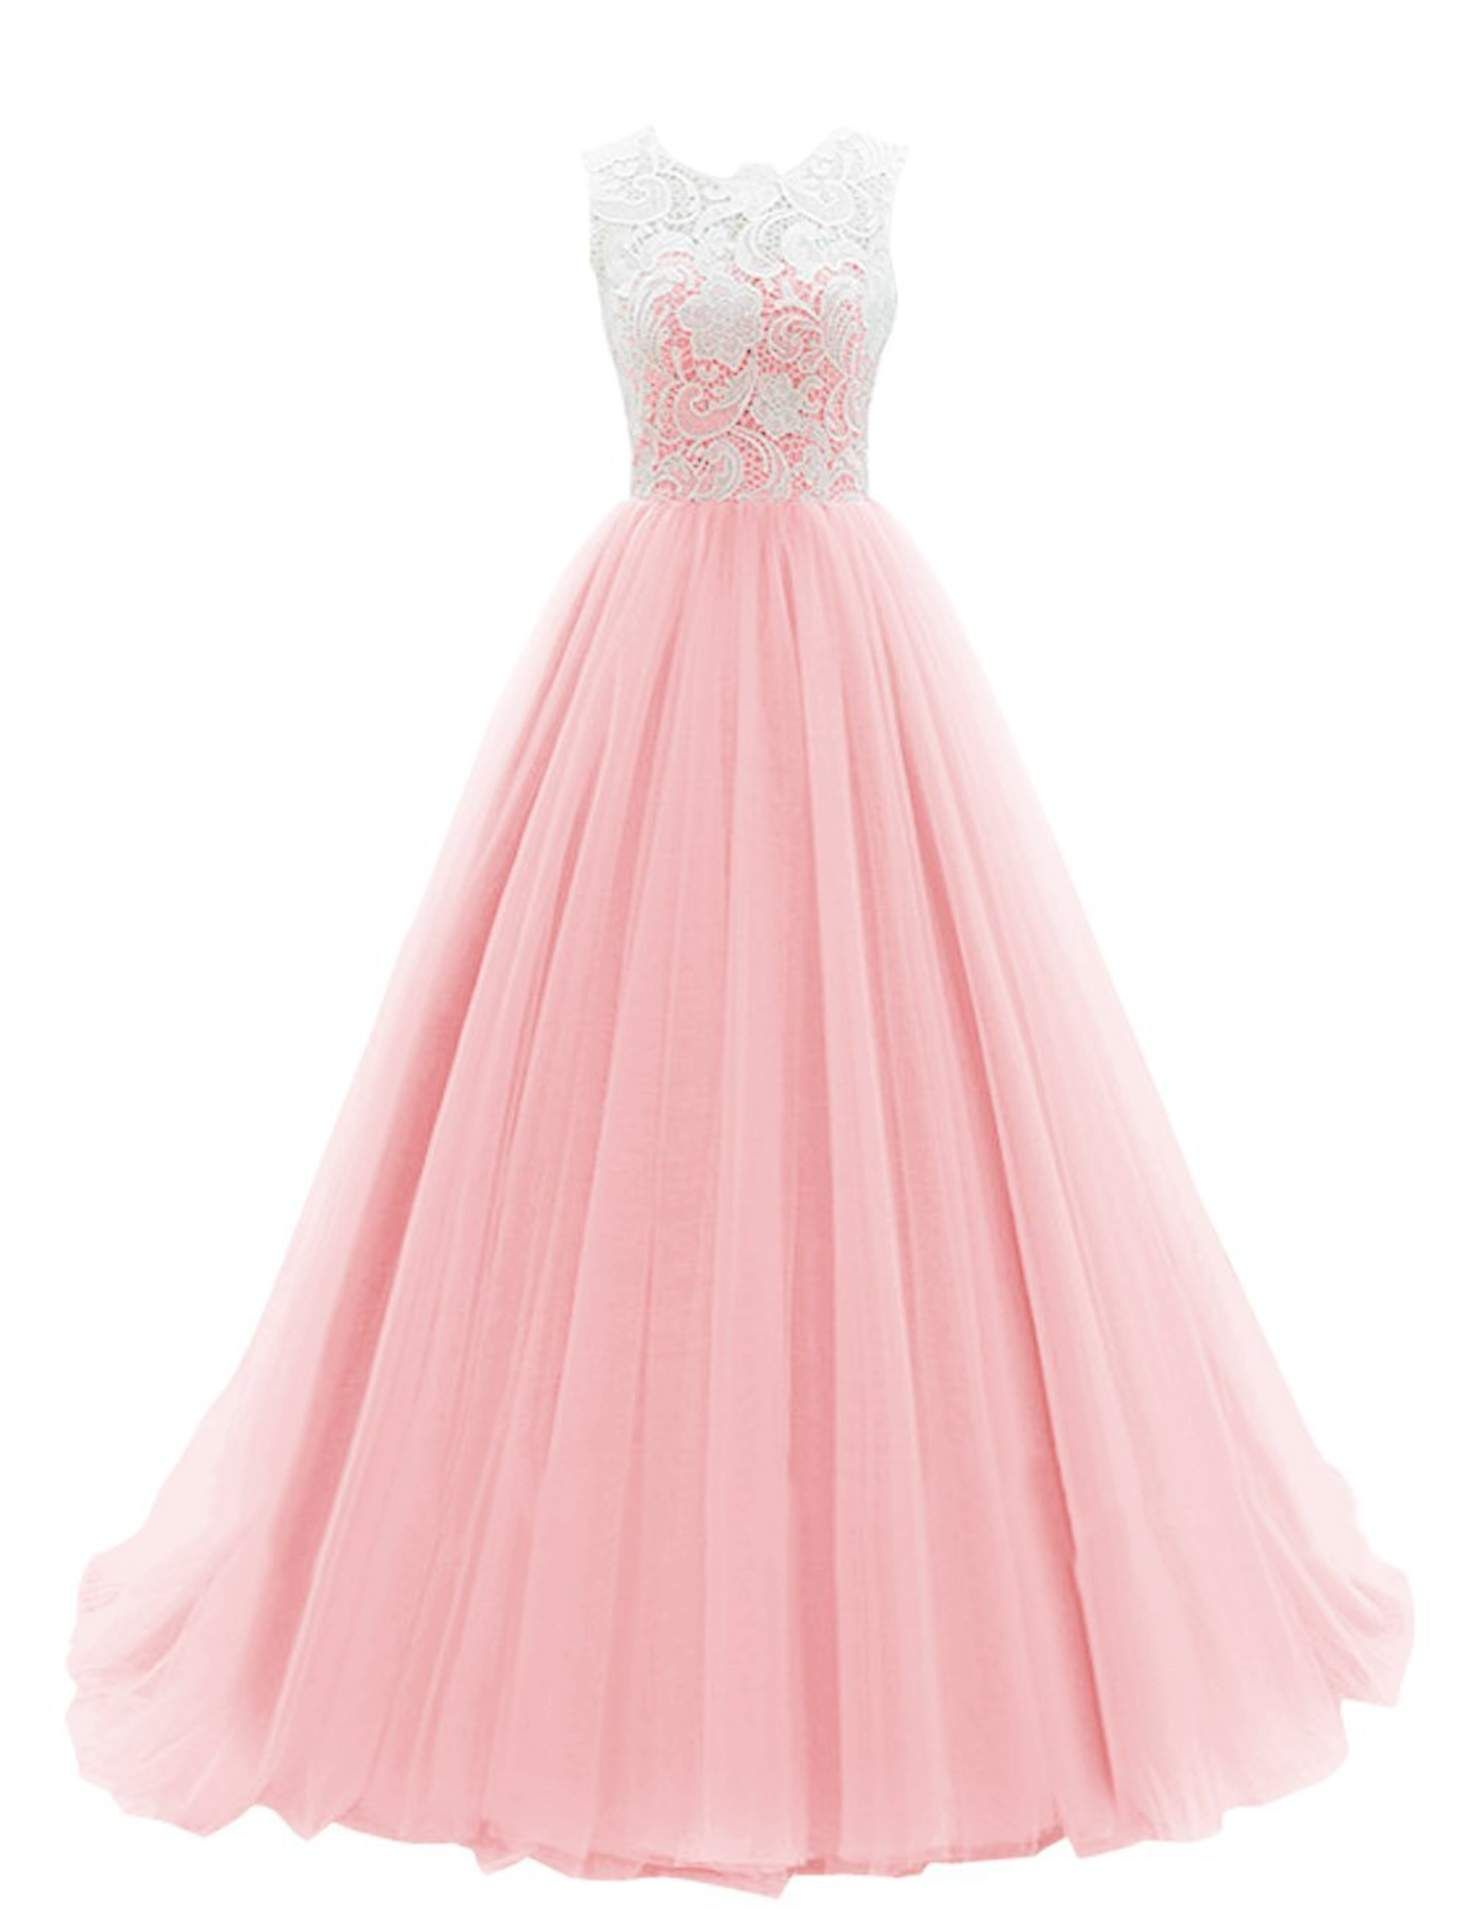 Dresstells Womenus Long Tulle Prom Dress Dance Gown with Lace Woo